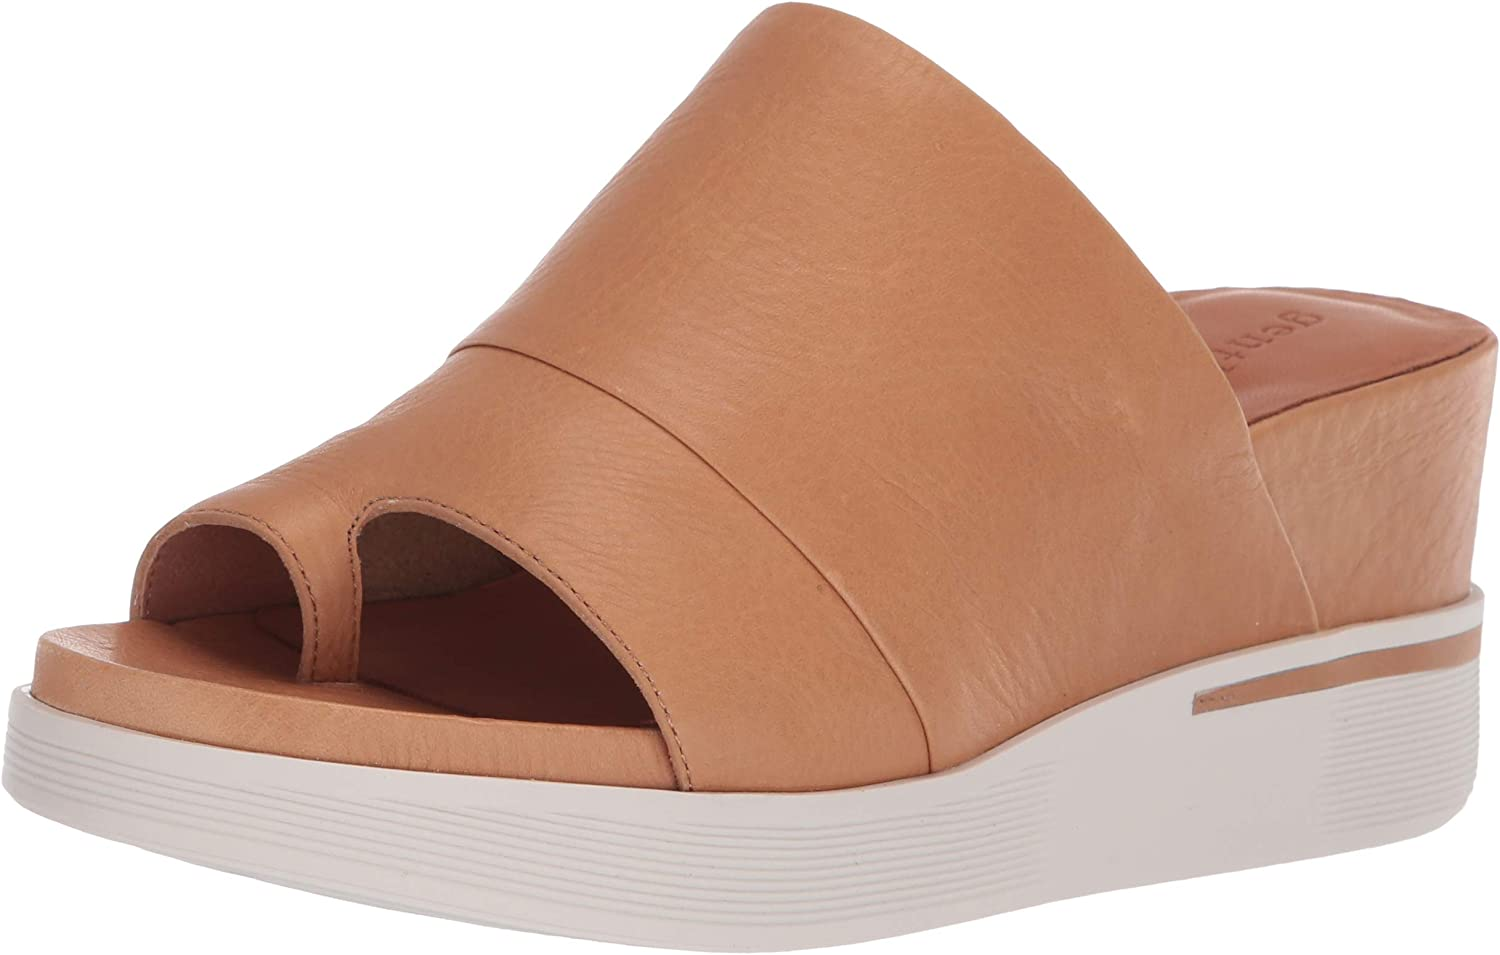 Gentle Souls by Kenneth Cole Women's Wedge Sporty Sandal New color on Slip 5 ☆ very popular